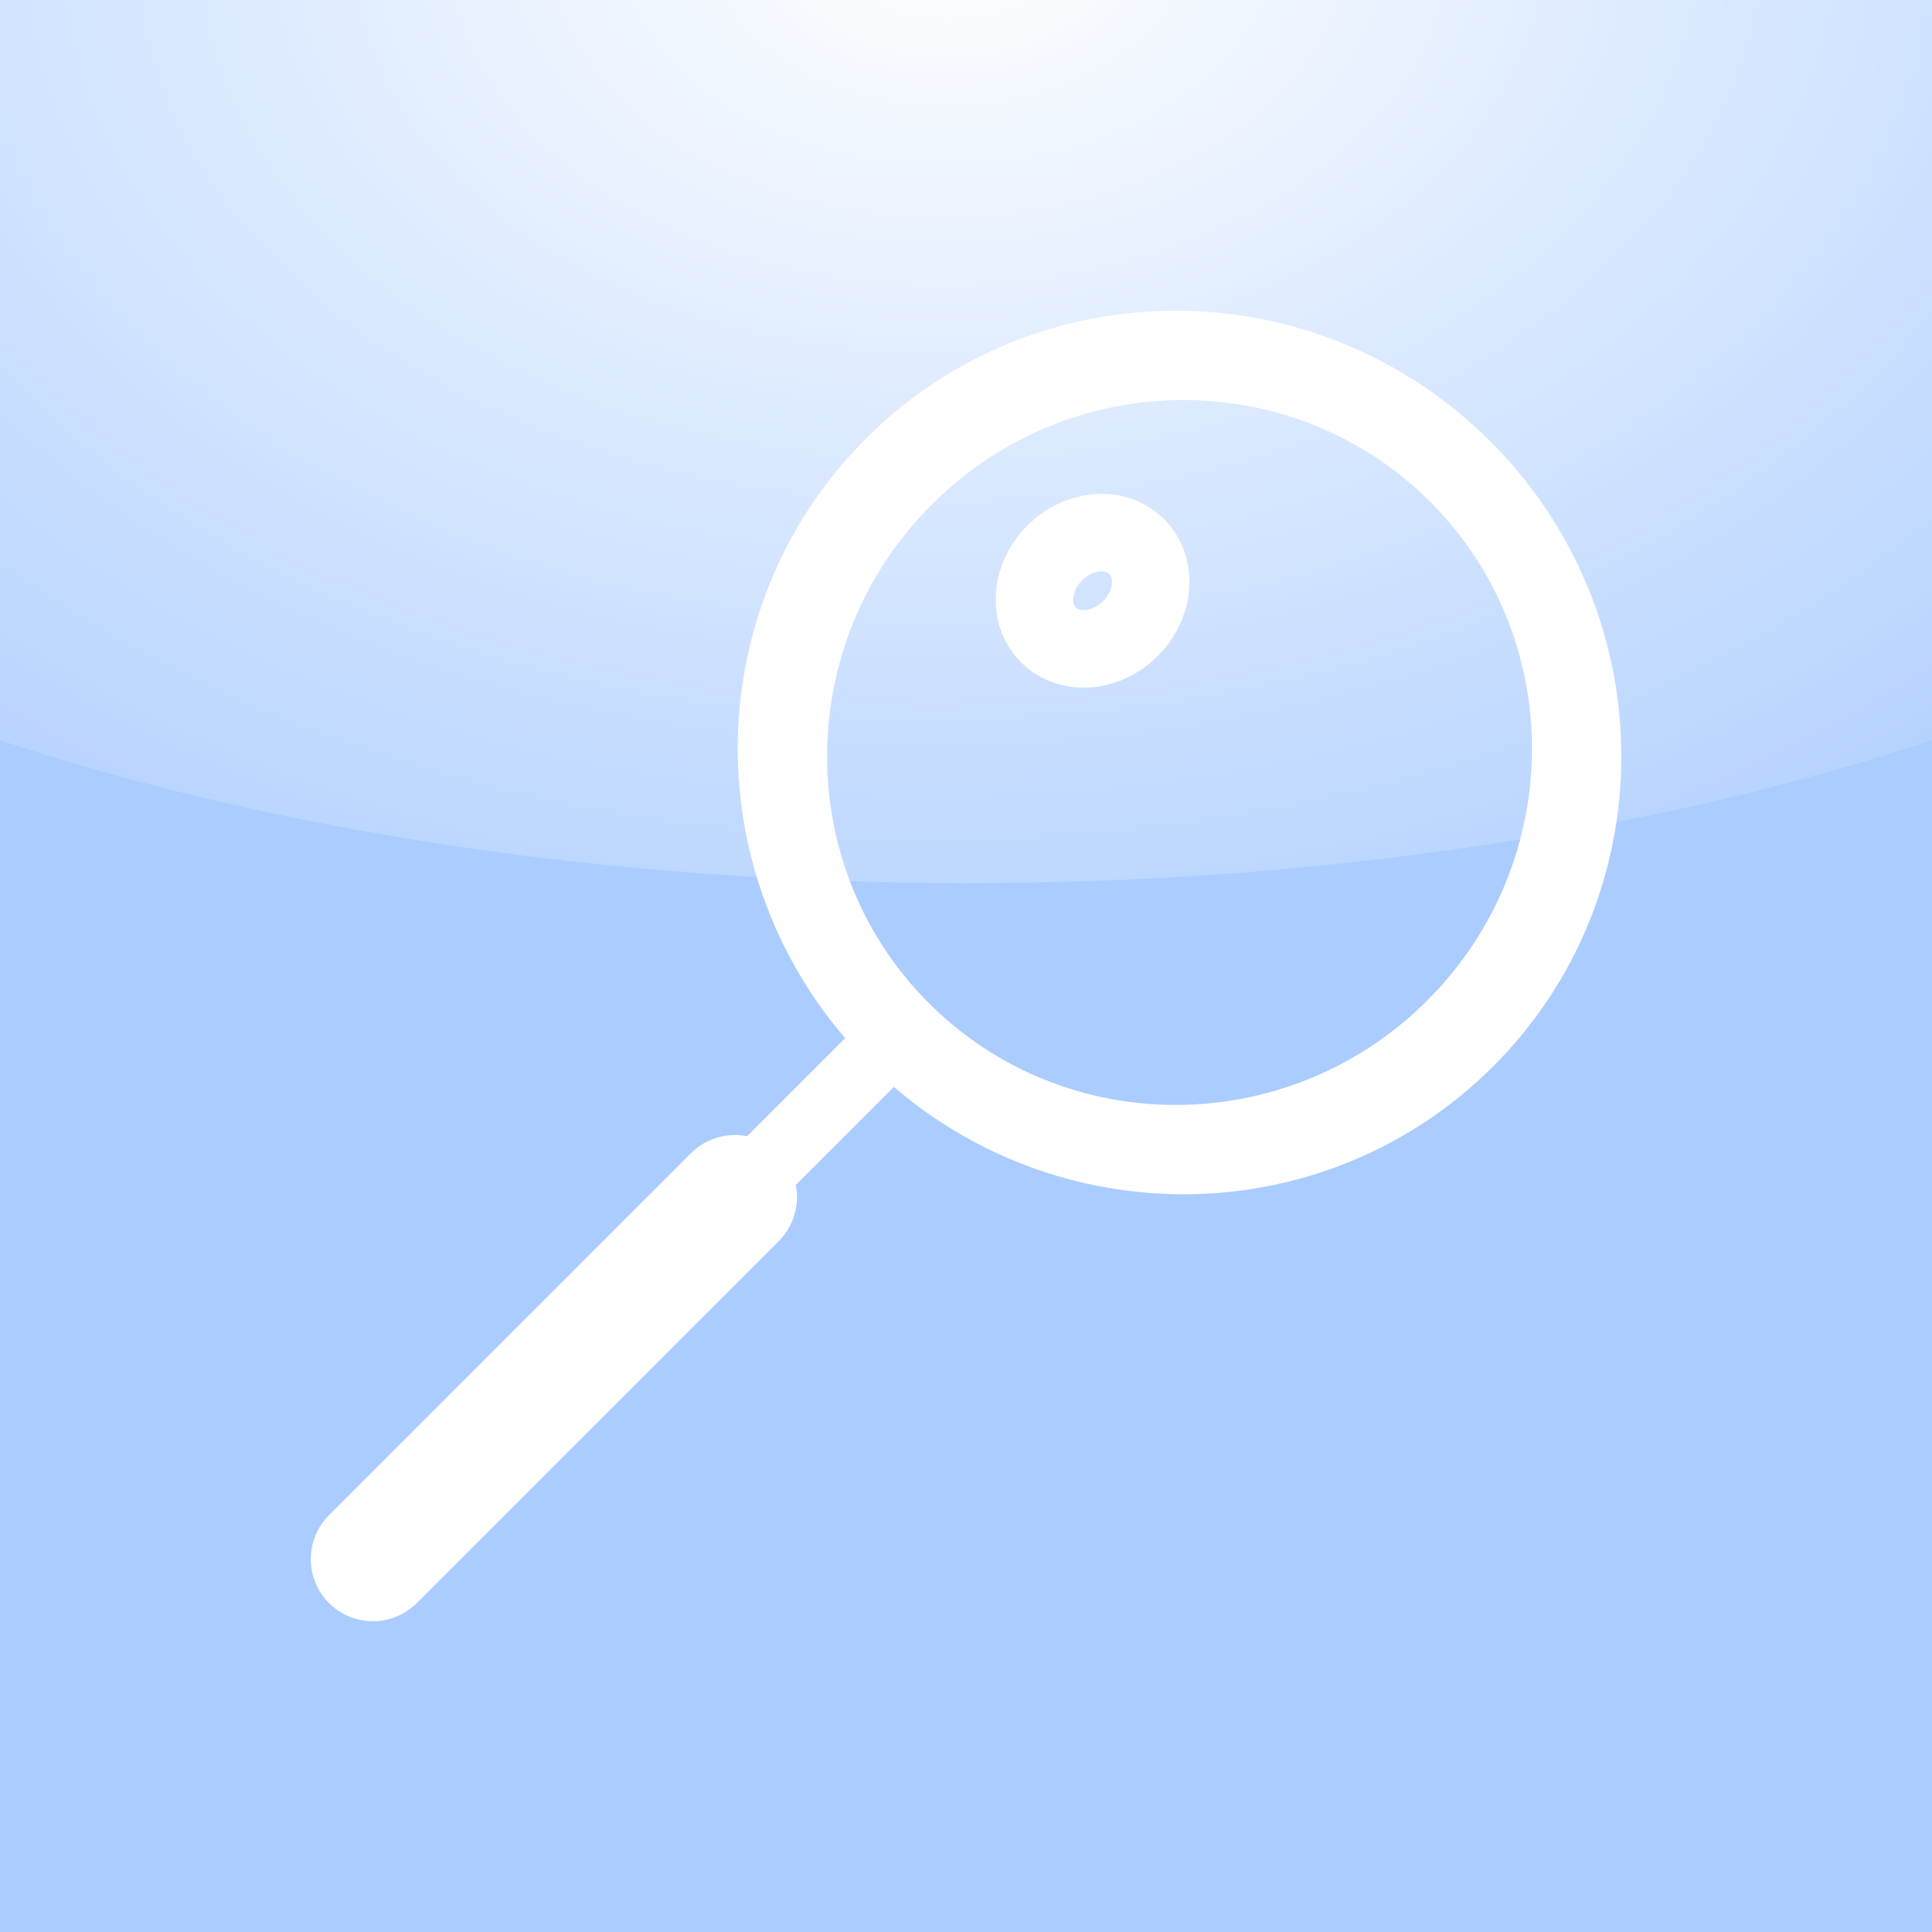 Magnifying Glass Icon by Dustwin